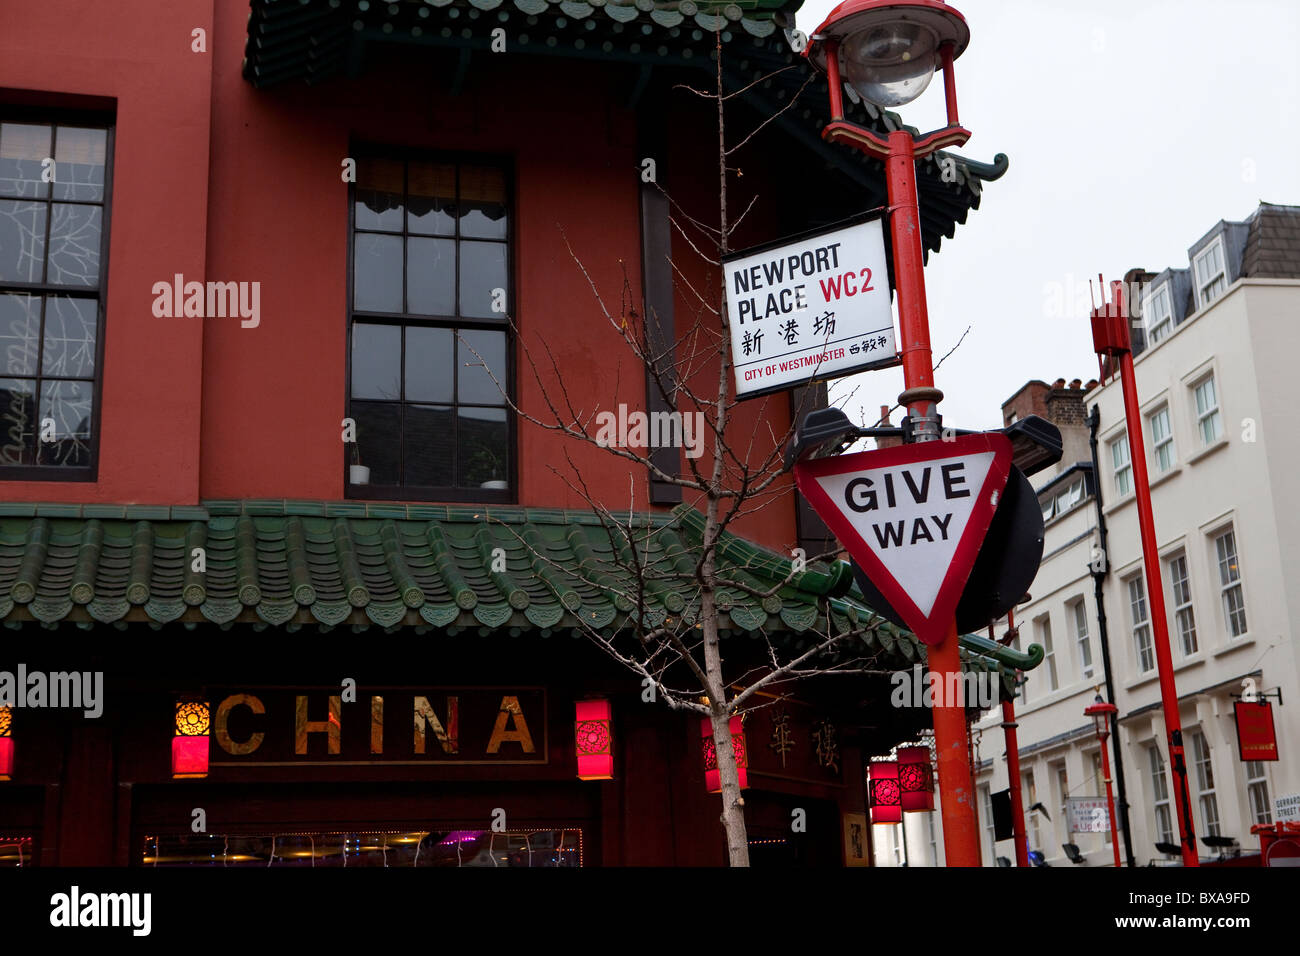 Newport Place street sign, China Town, London - Stock Image